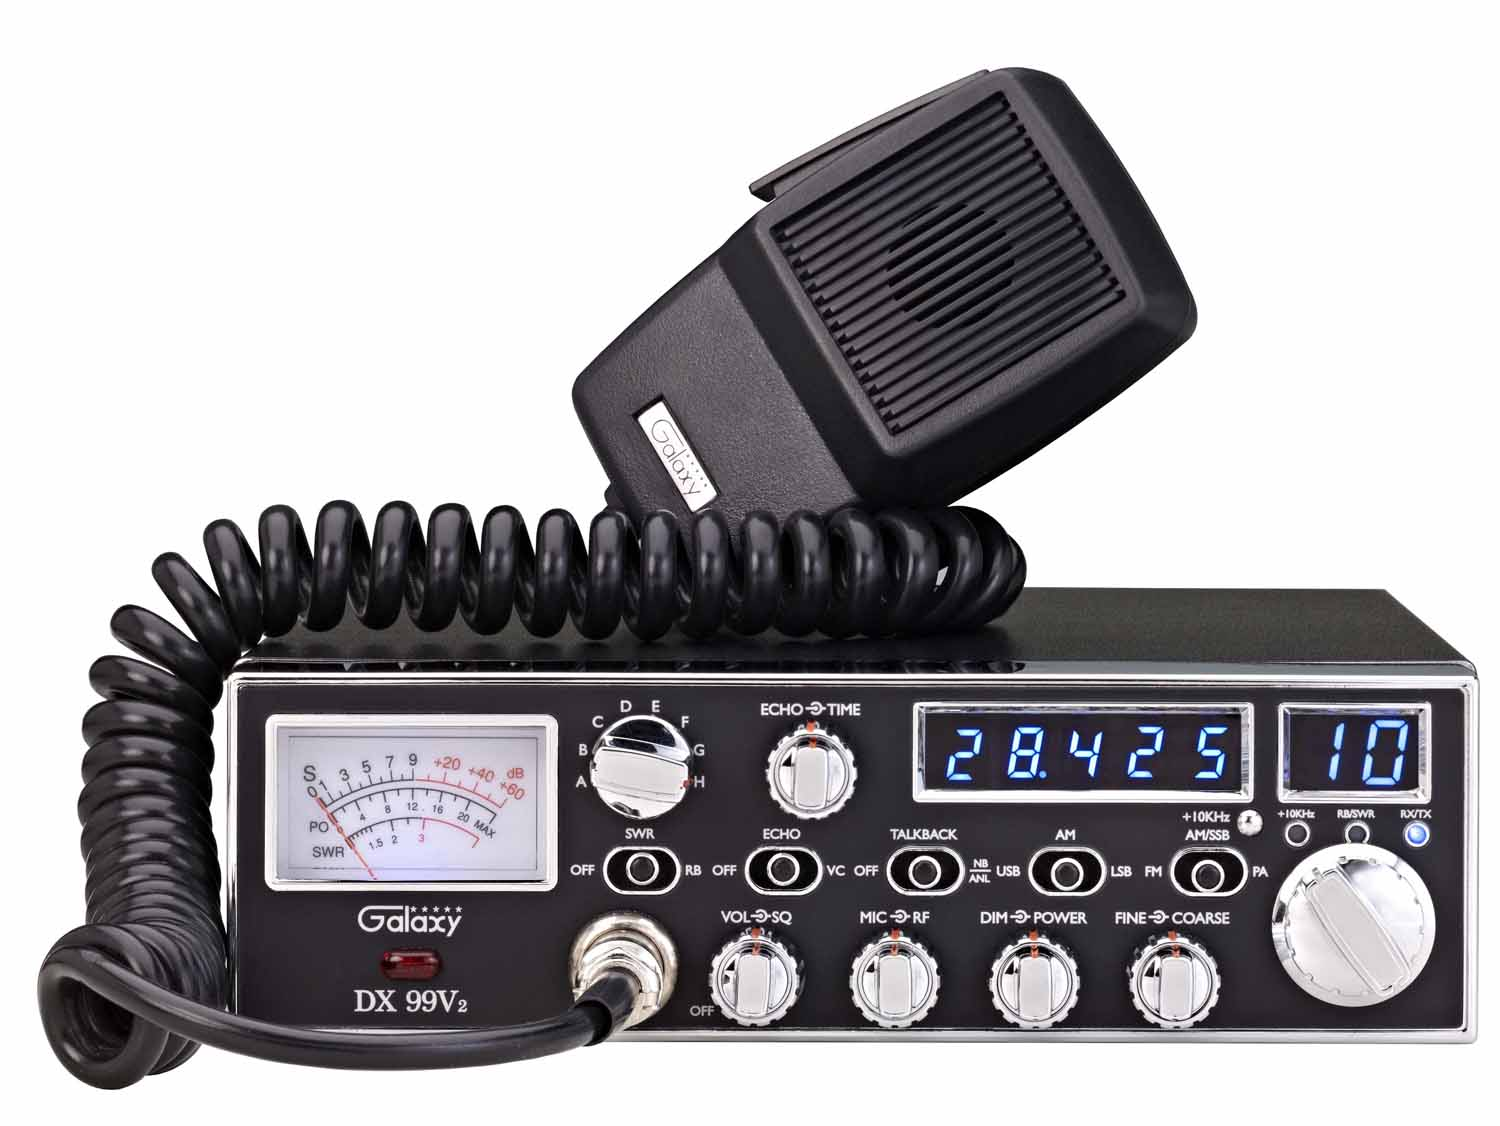 DX99V2 - Galaxy 10 Meter Mobile Radio